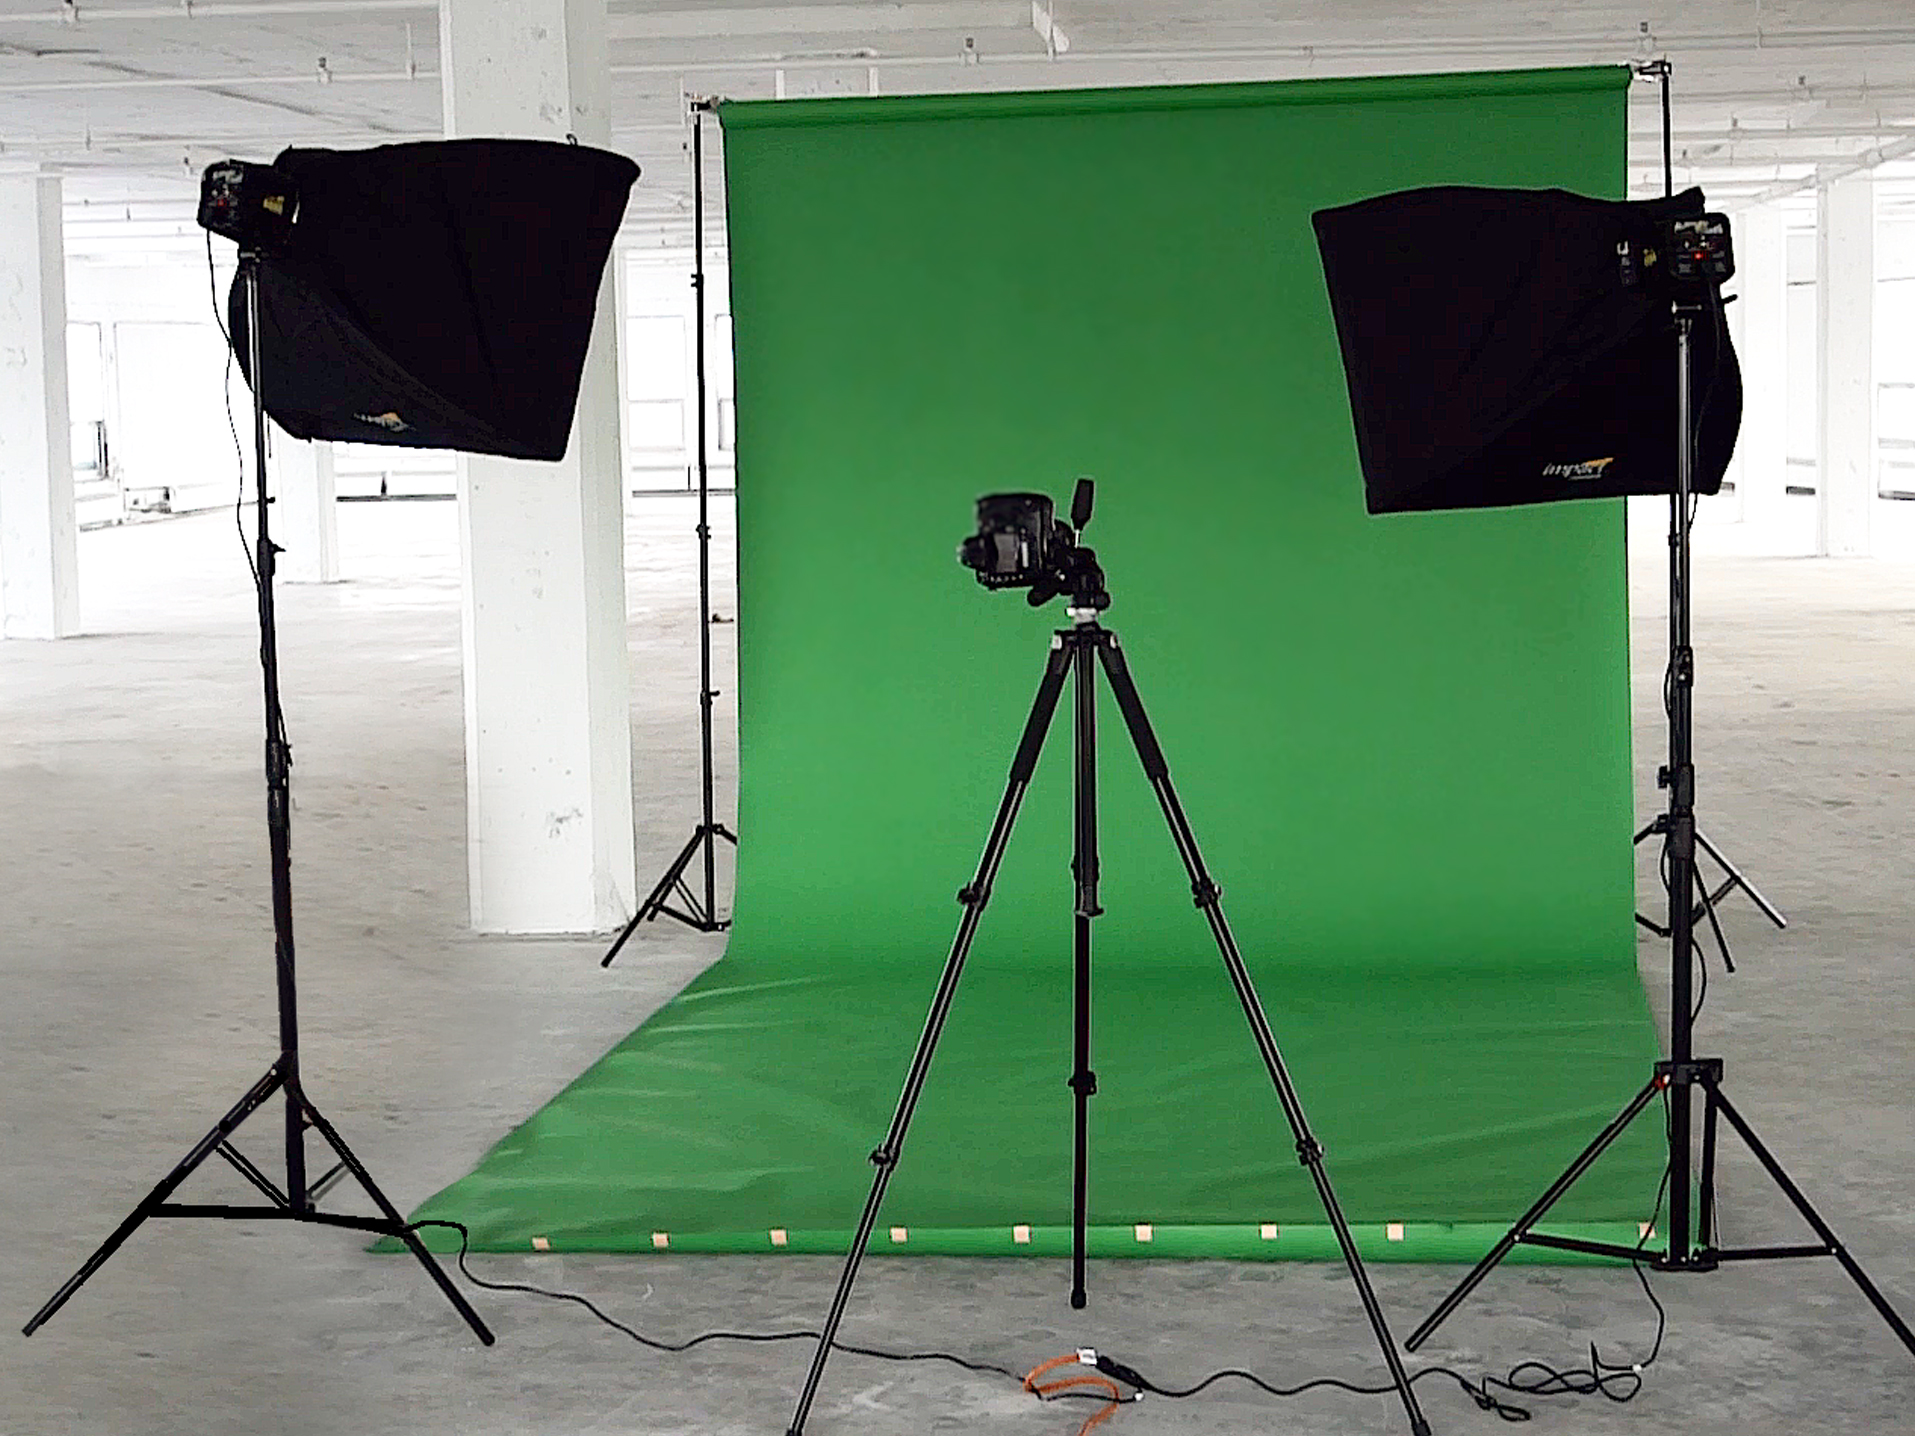 Green Screen Setup in a Studio